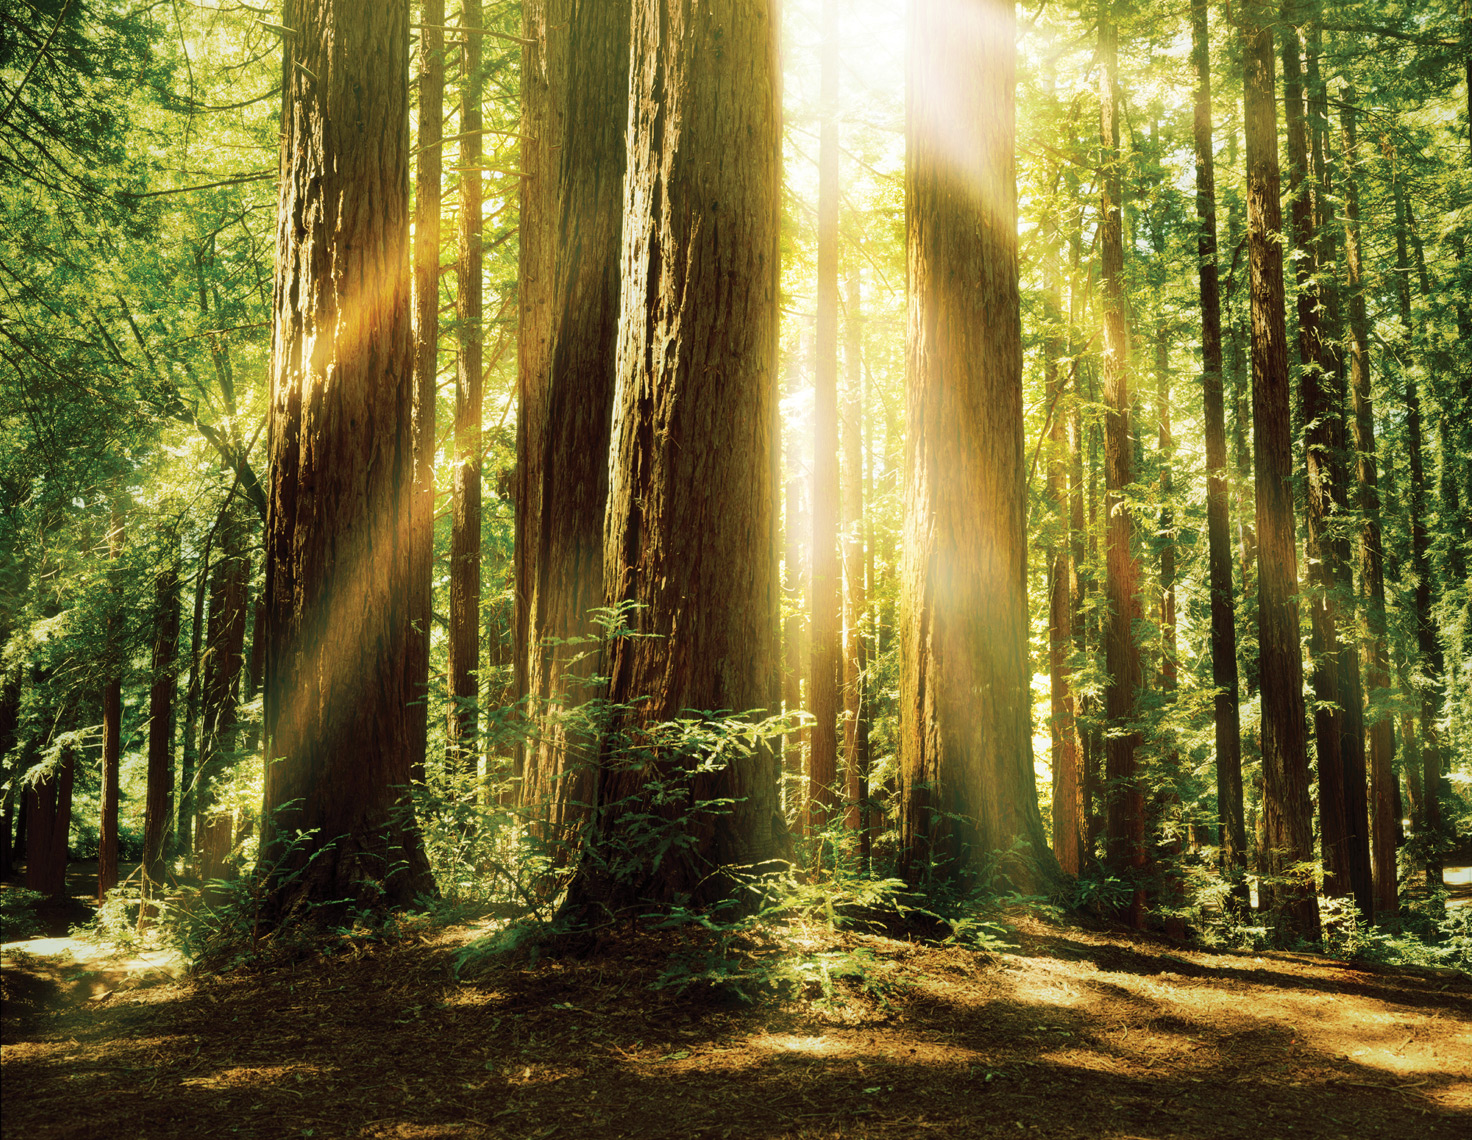 Sun streams through the  Redwoods, Redwood National Park.